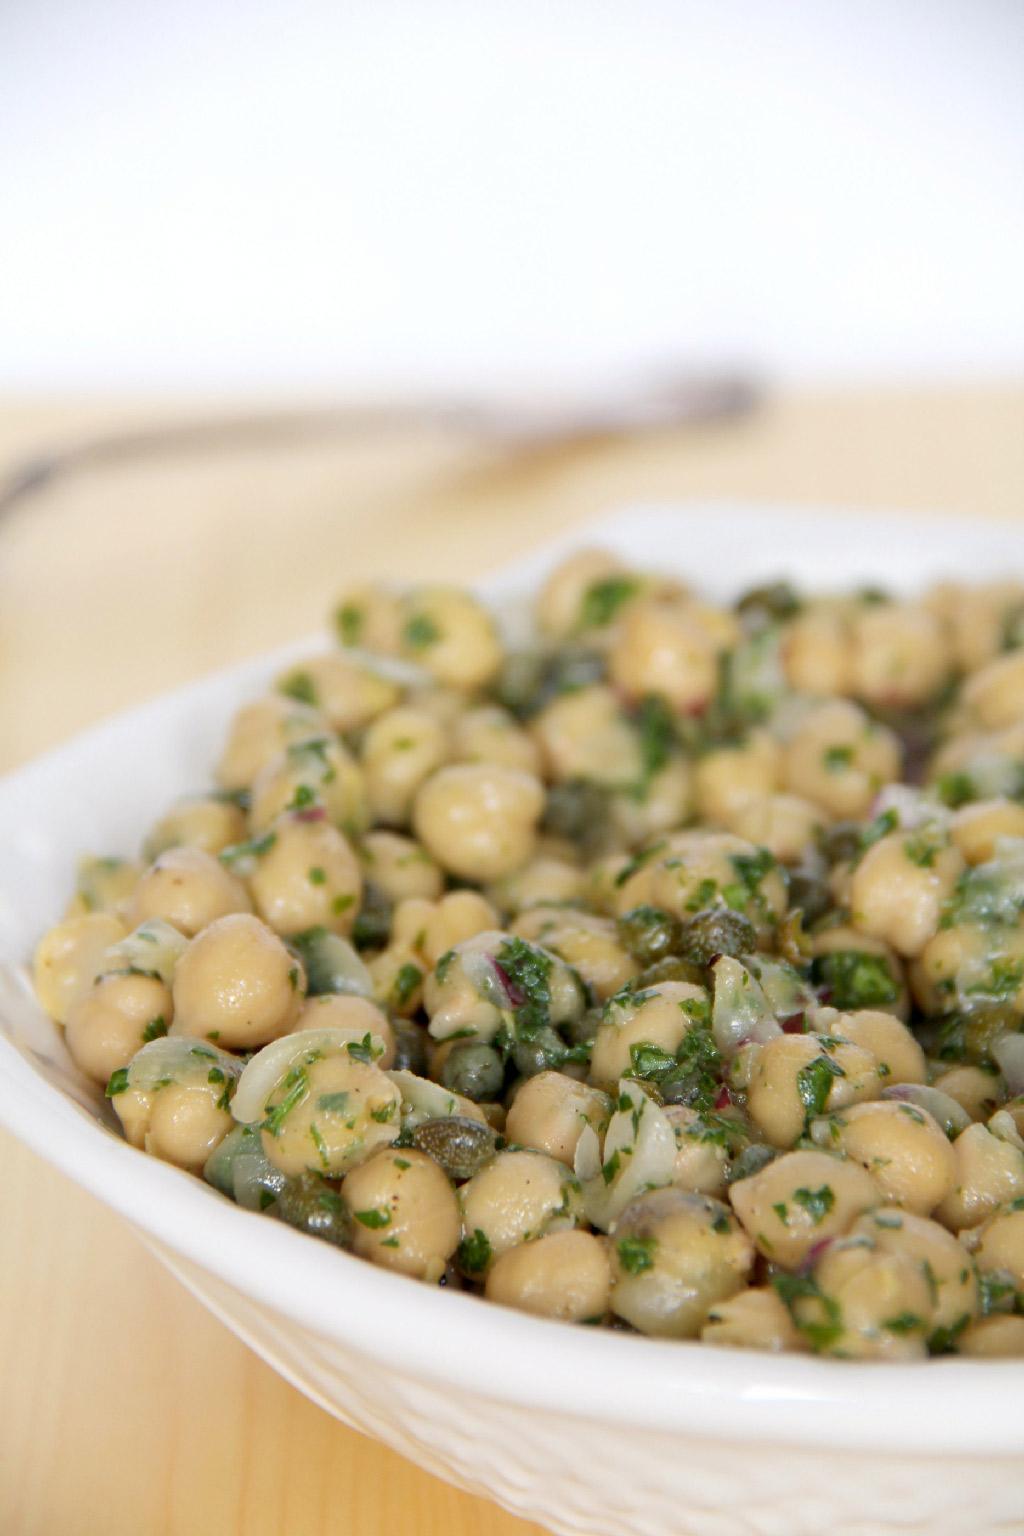 Chickpea salad that's super easy and healthy, with just chickpeas, parsley, onion, and capers, mixed with a lemon vinaigrette.